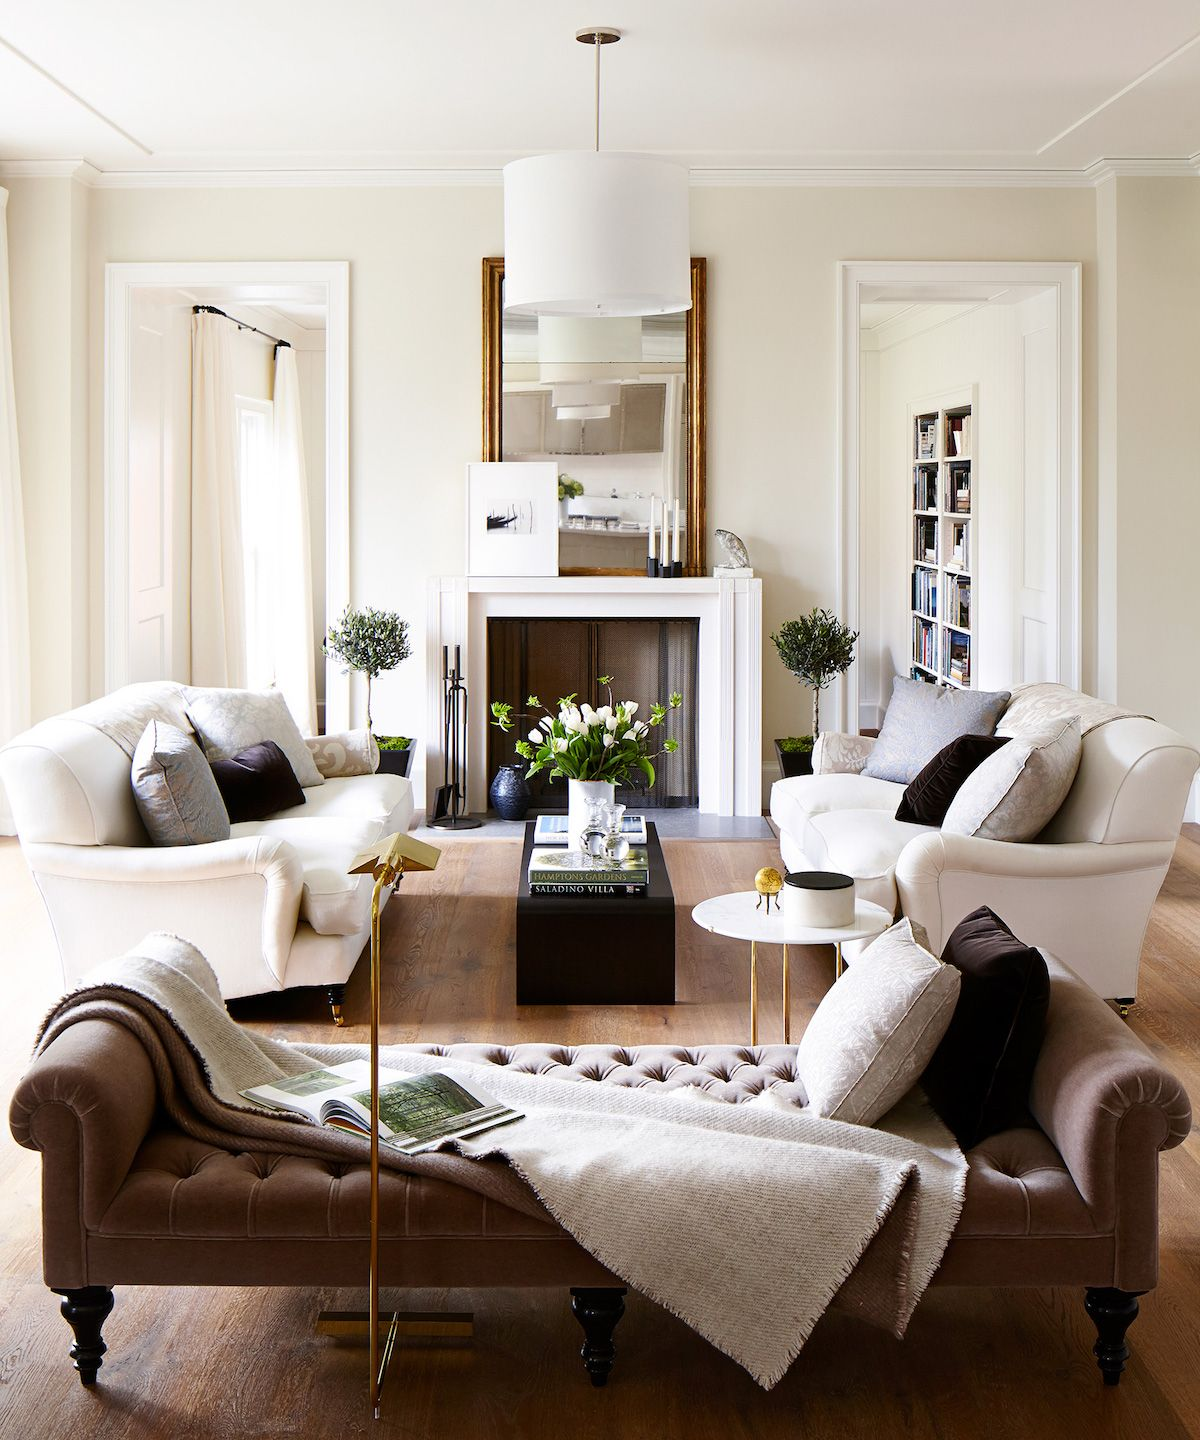 painting living room furniture white design ideas tv 10 paint colors with cult followings architects all time favorite picks from the remodelista architect designer directory more